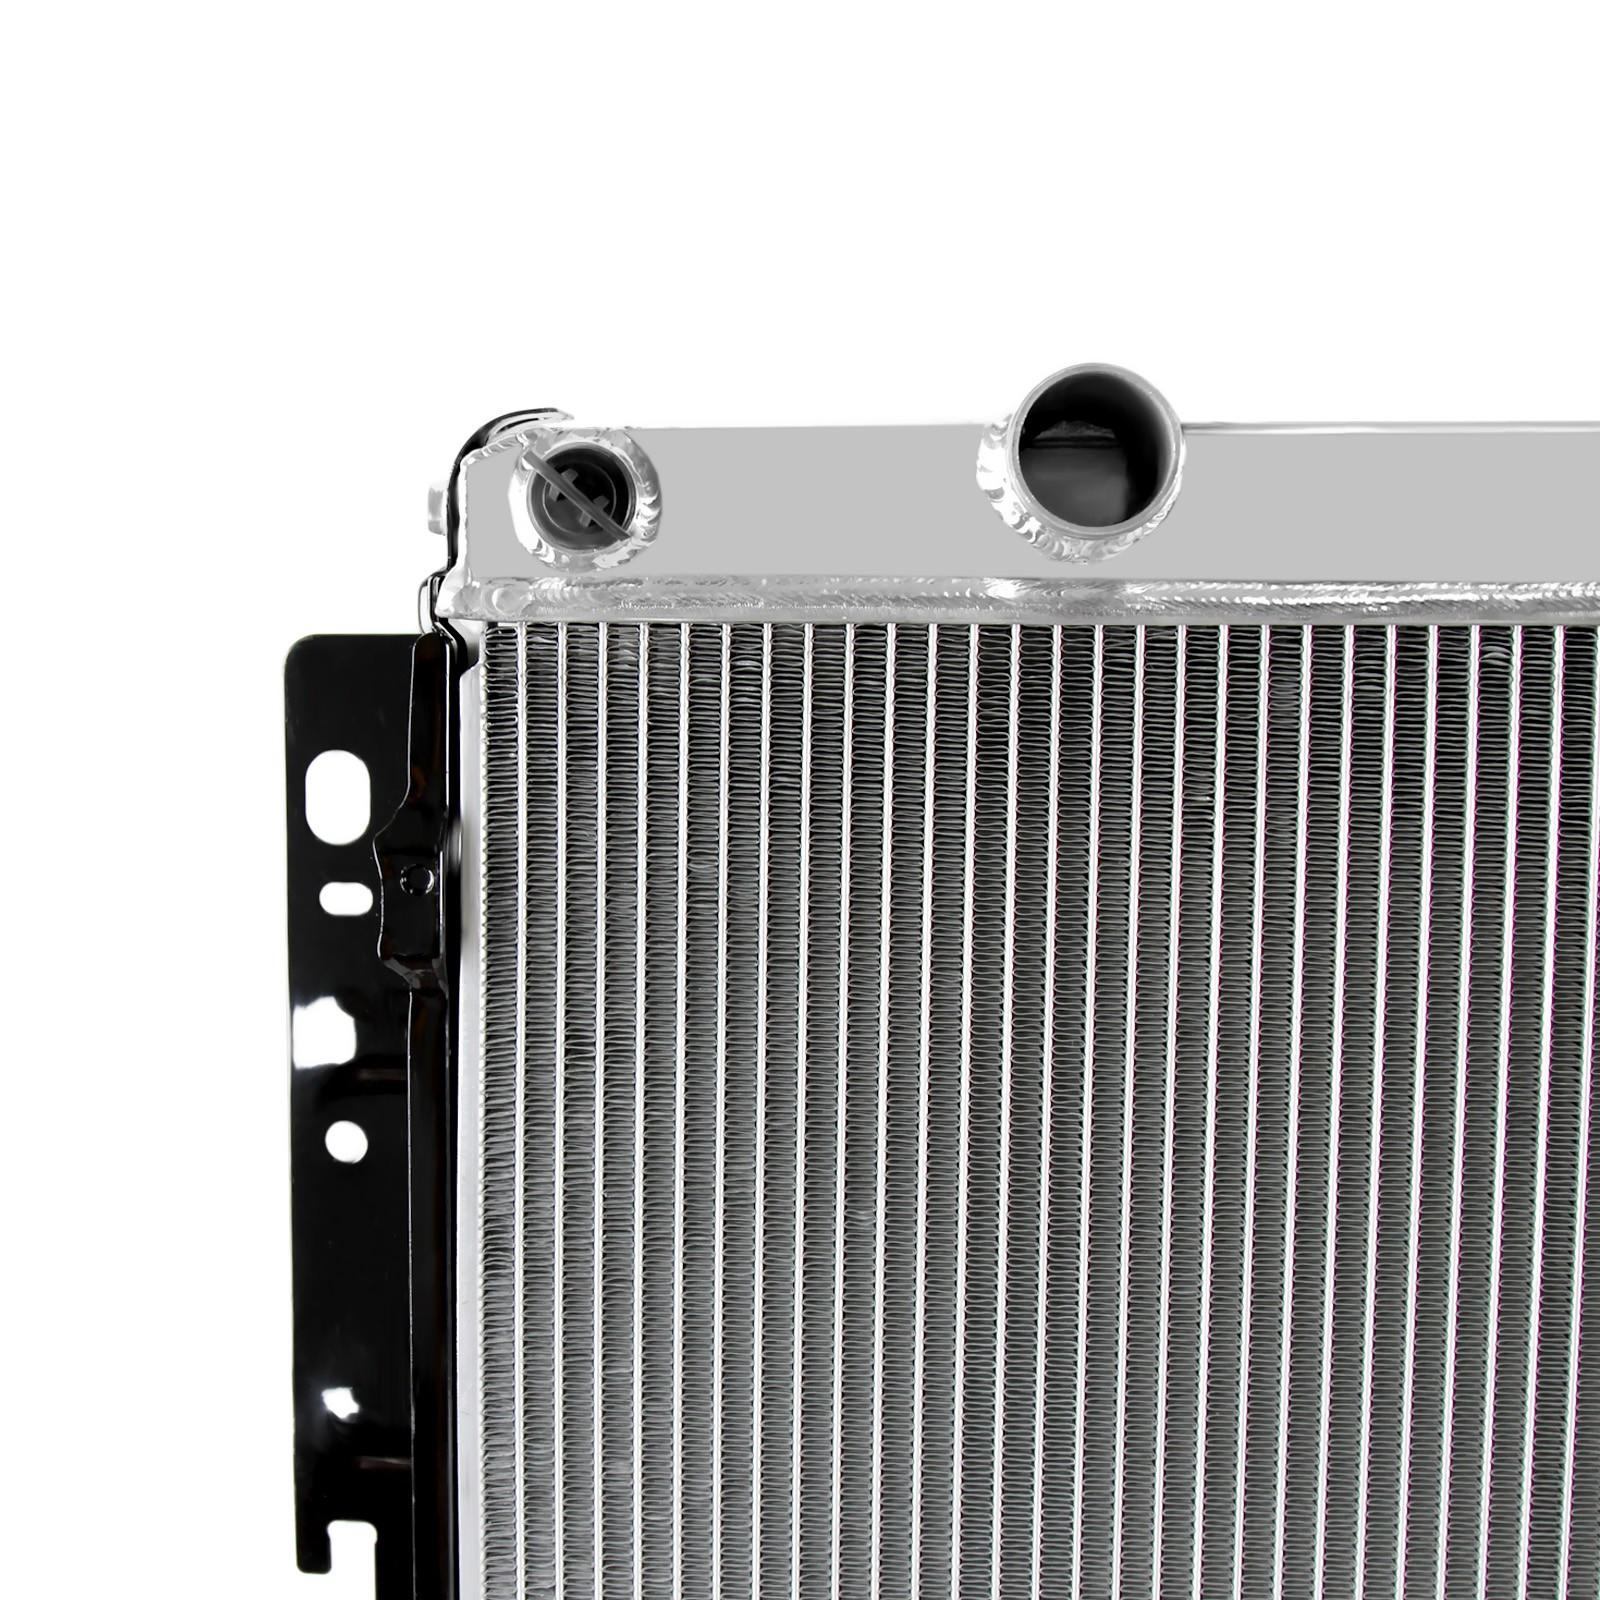 33l 20052007 at Dromedary Brand 2005 dodge ram 1500 radiator supplier